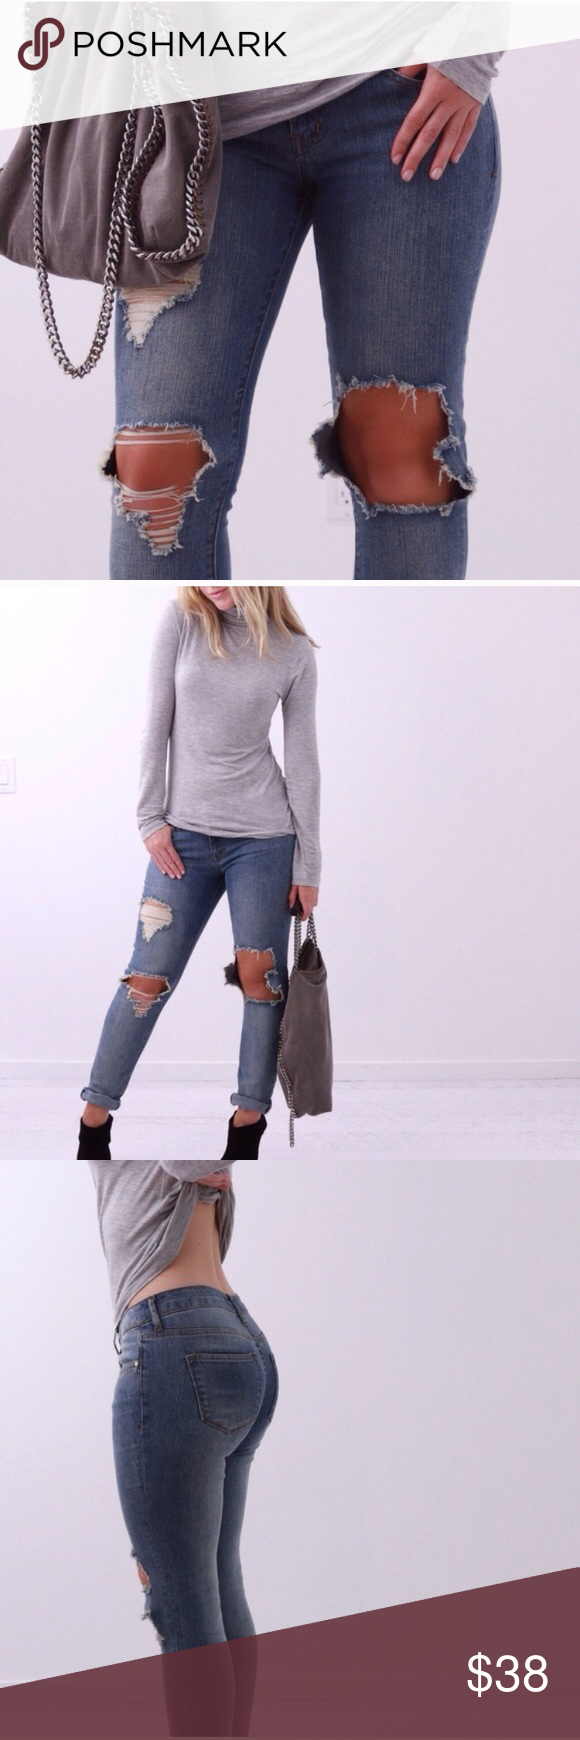 """REPOSH: Brooklyn Ripped Denim Originally purchased from 11thstreet! Size 26. NWOT. They are just a bit too tight for me. 31"""" inseam. Made of cotton and spandex. PRICE FIRM✨ Jeans"""